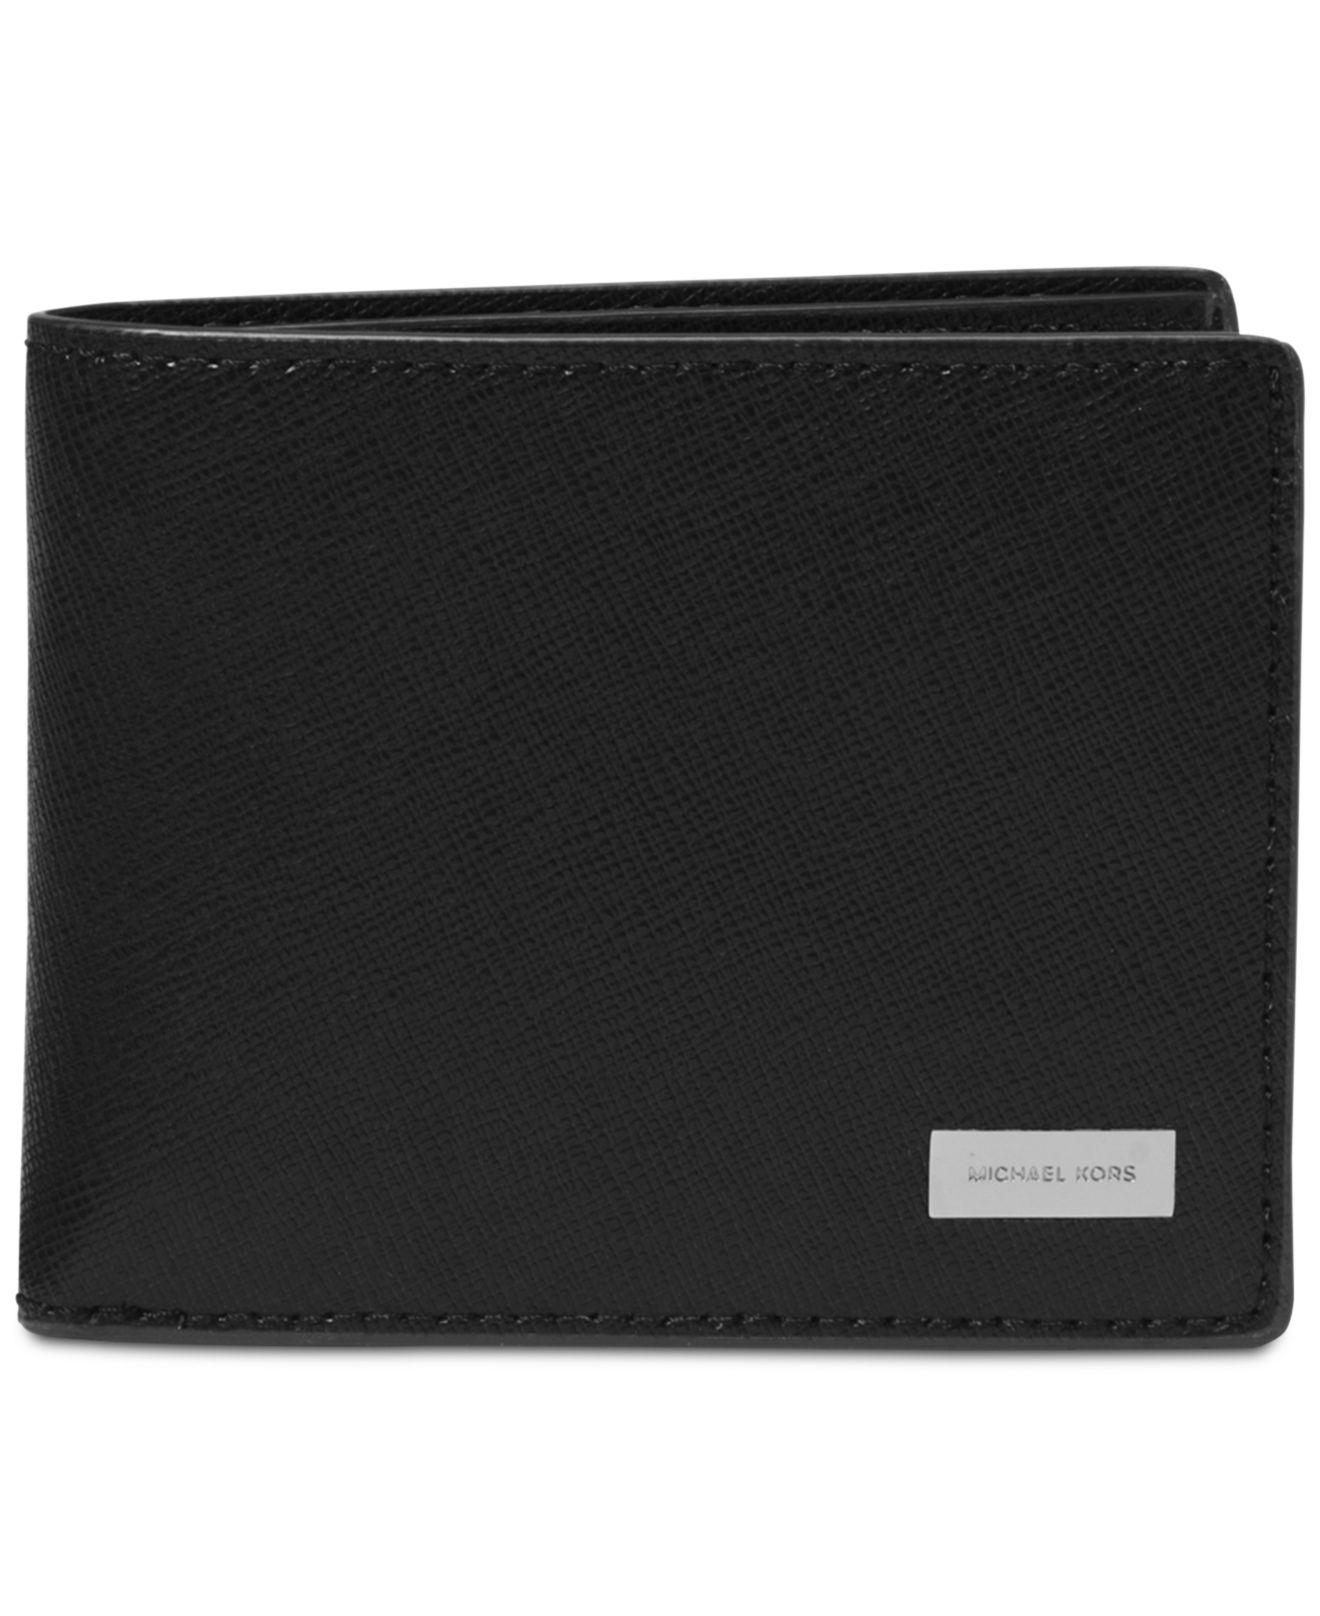 4f29c297db1e8 Michael Kors Men s Andy Leather Bifold Wallet in Black for Men - Lyst